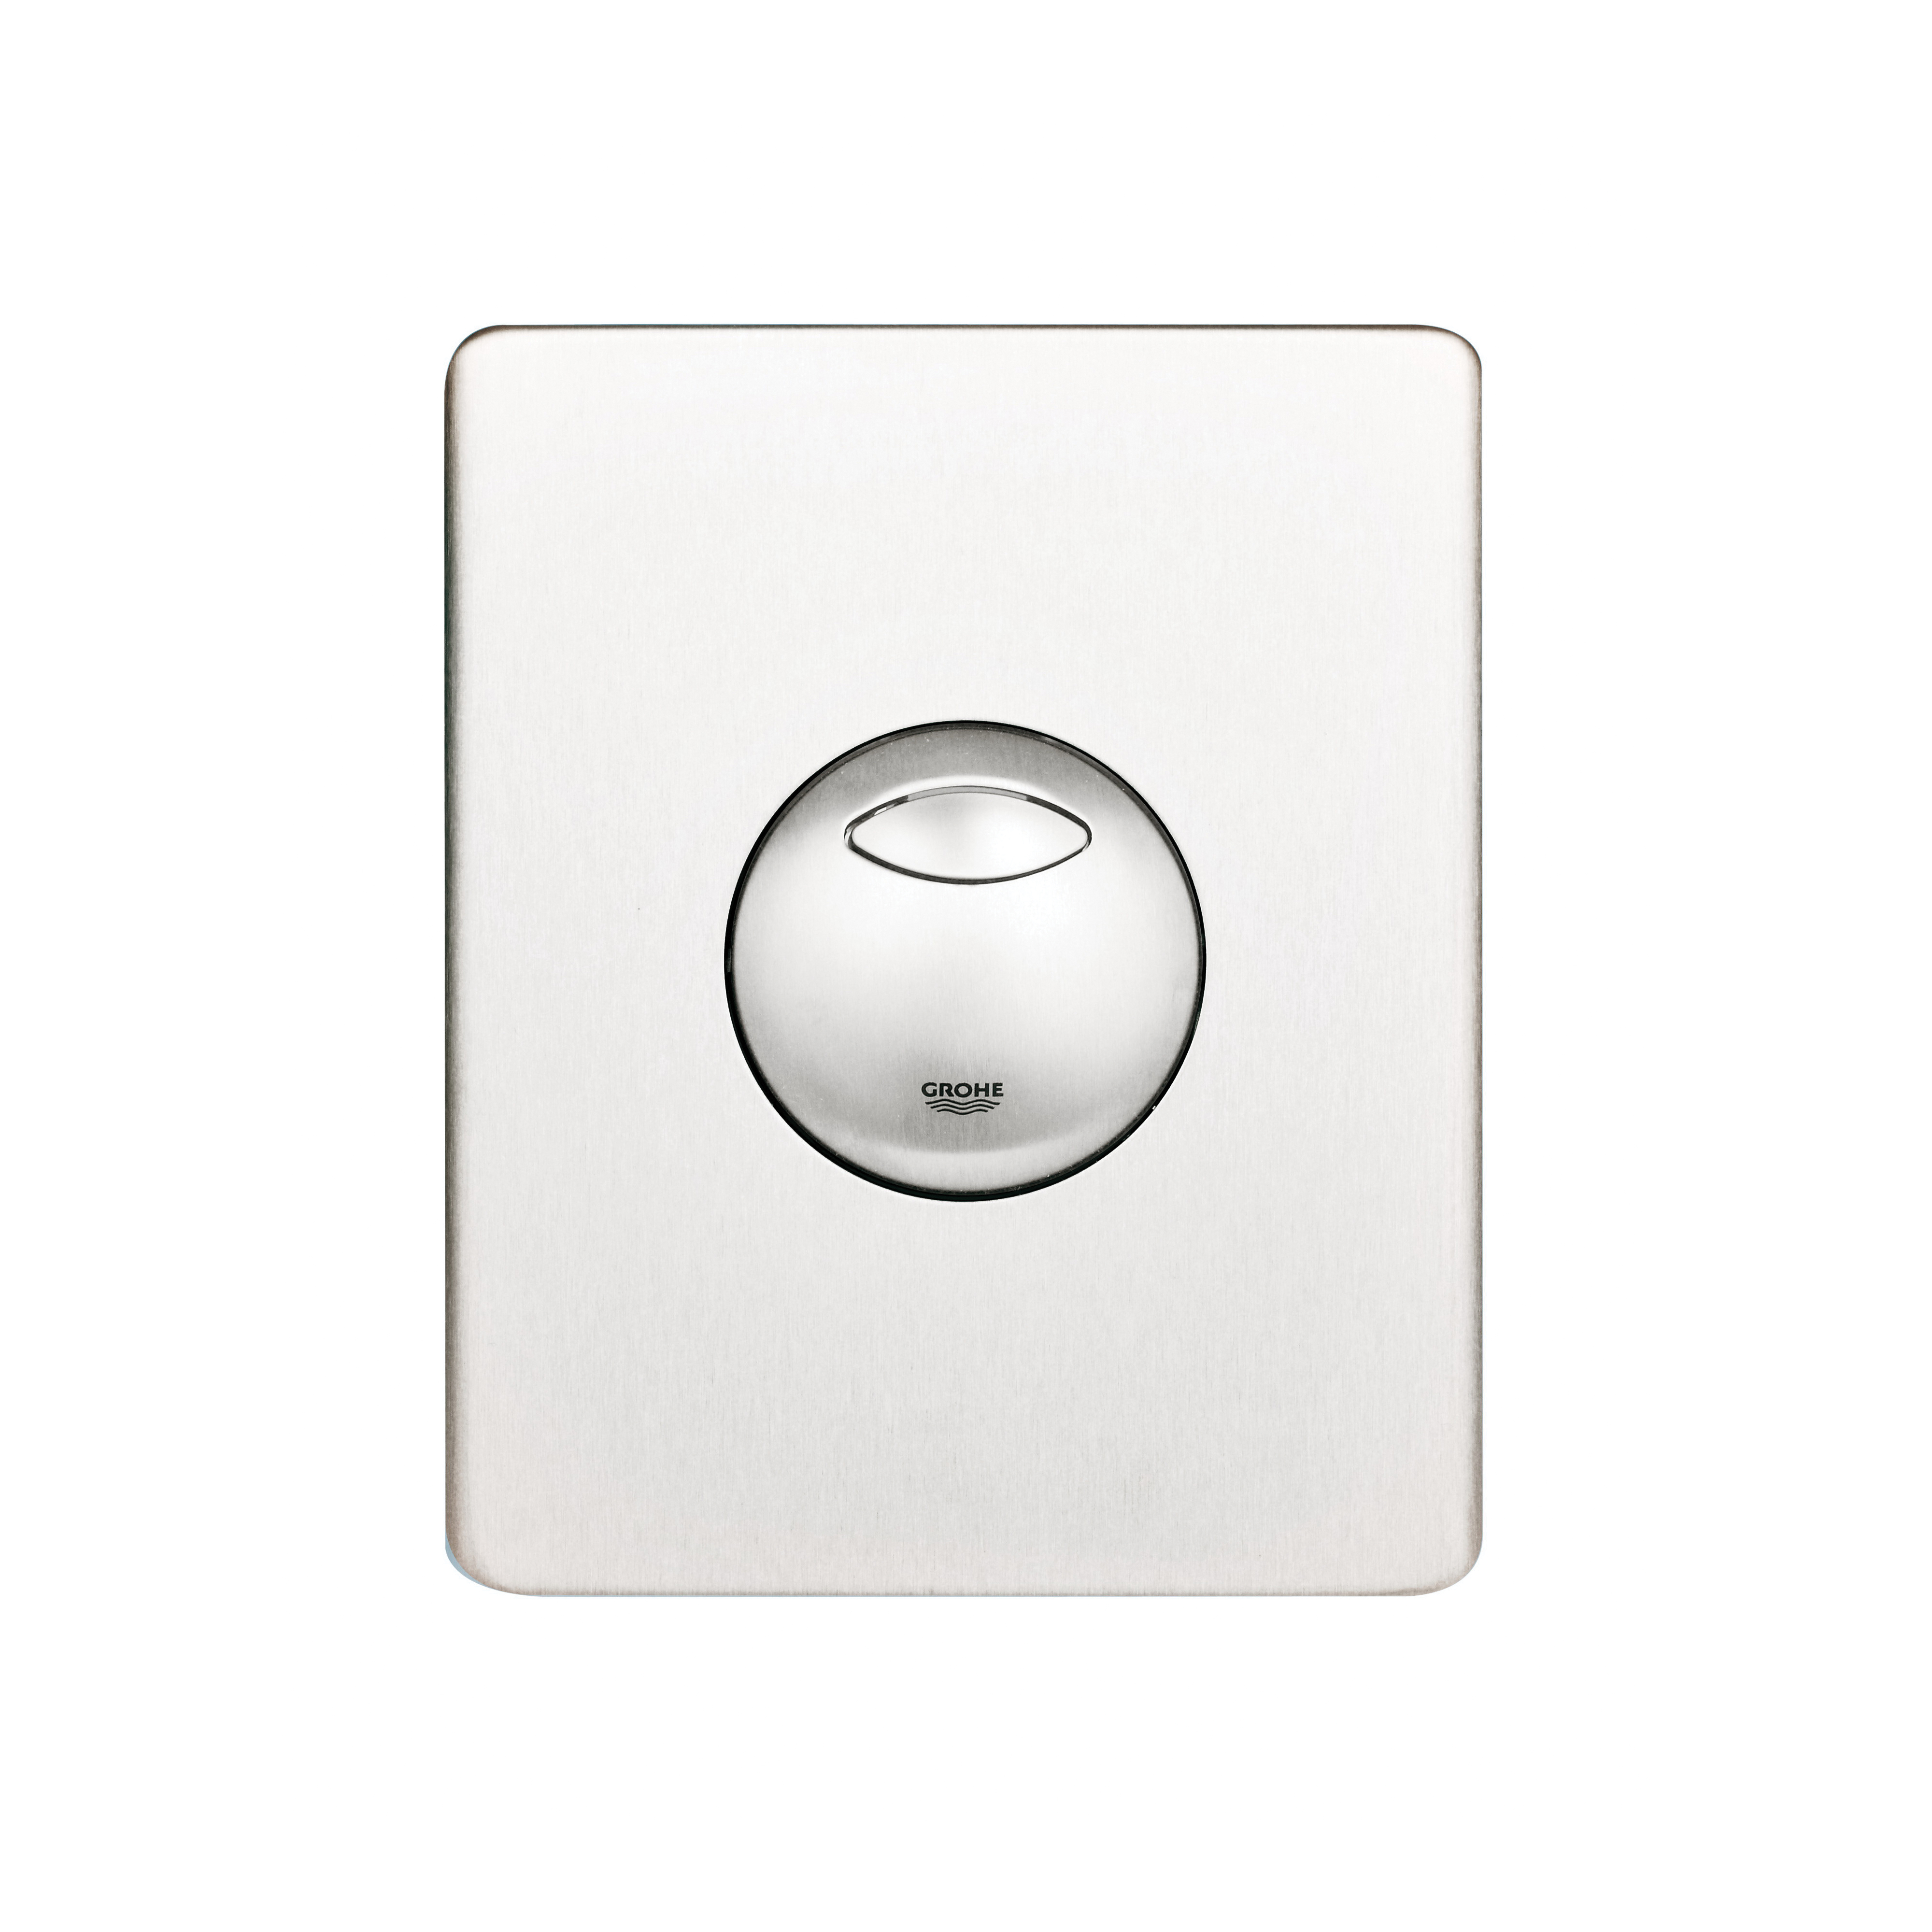 GROHE 38862SD0 Skate Wall Plate, For Use With Dual Flush or Start/Stop Actuation and AV1 Pneumatic Discharge Valve, ABS, RealSteel®, Import